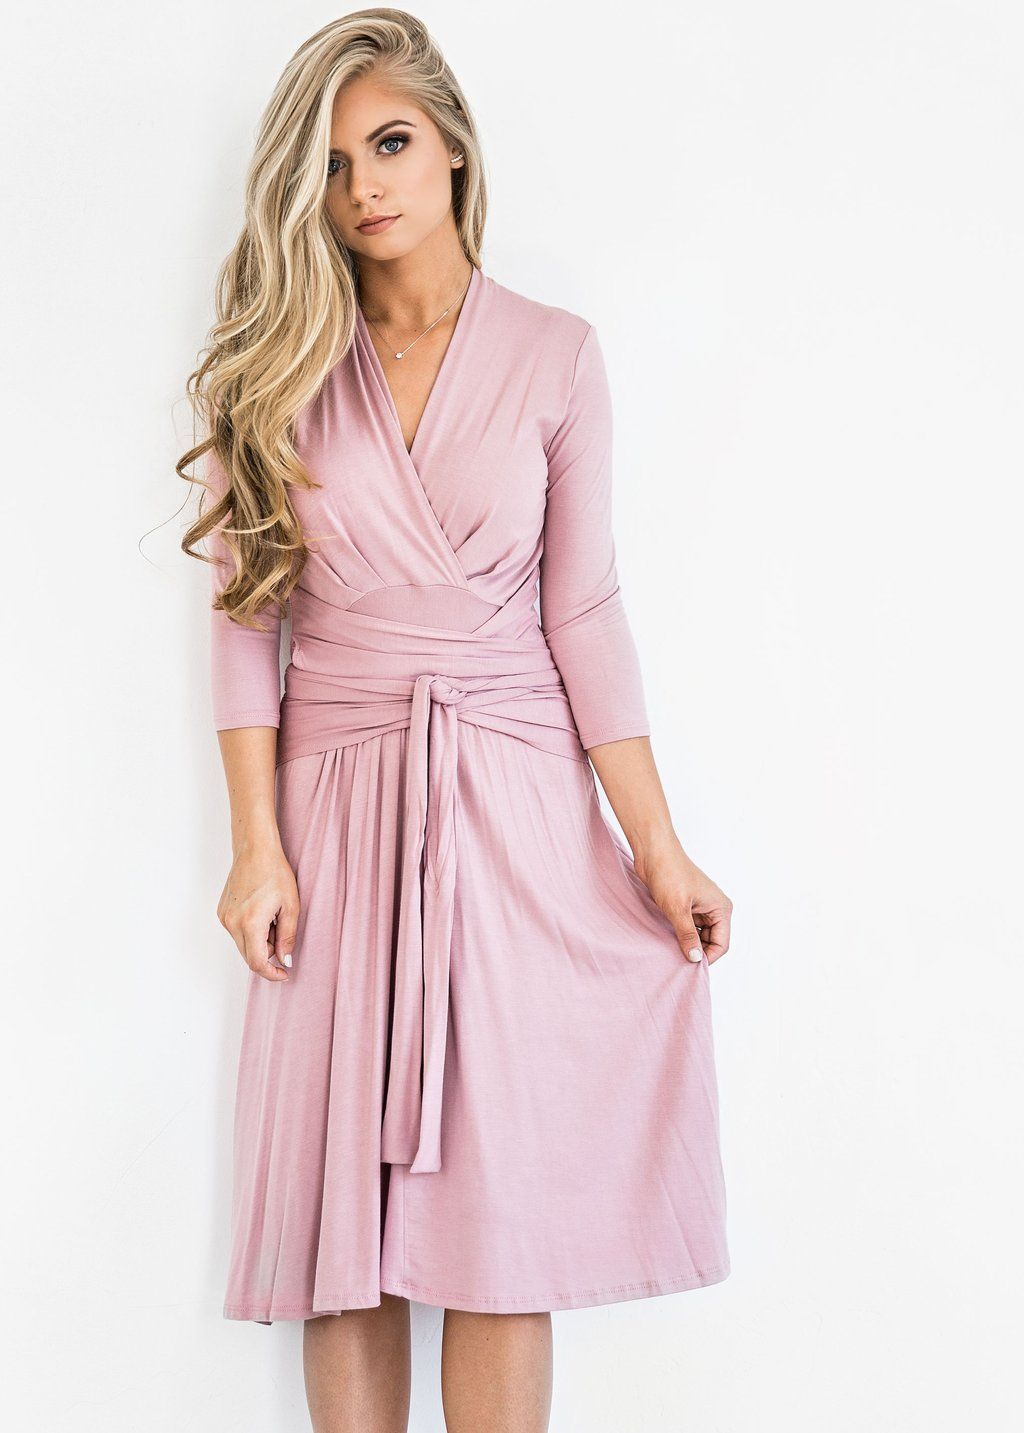 Arlo Mauve Wrap Dress, wrap dress, nursing friendly, jessakae, fall ...